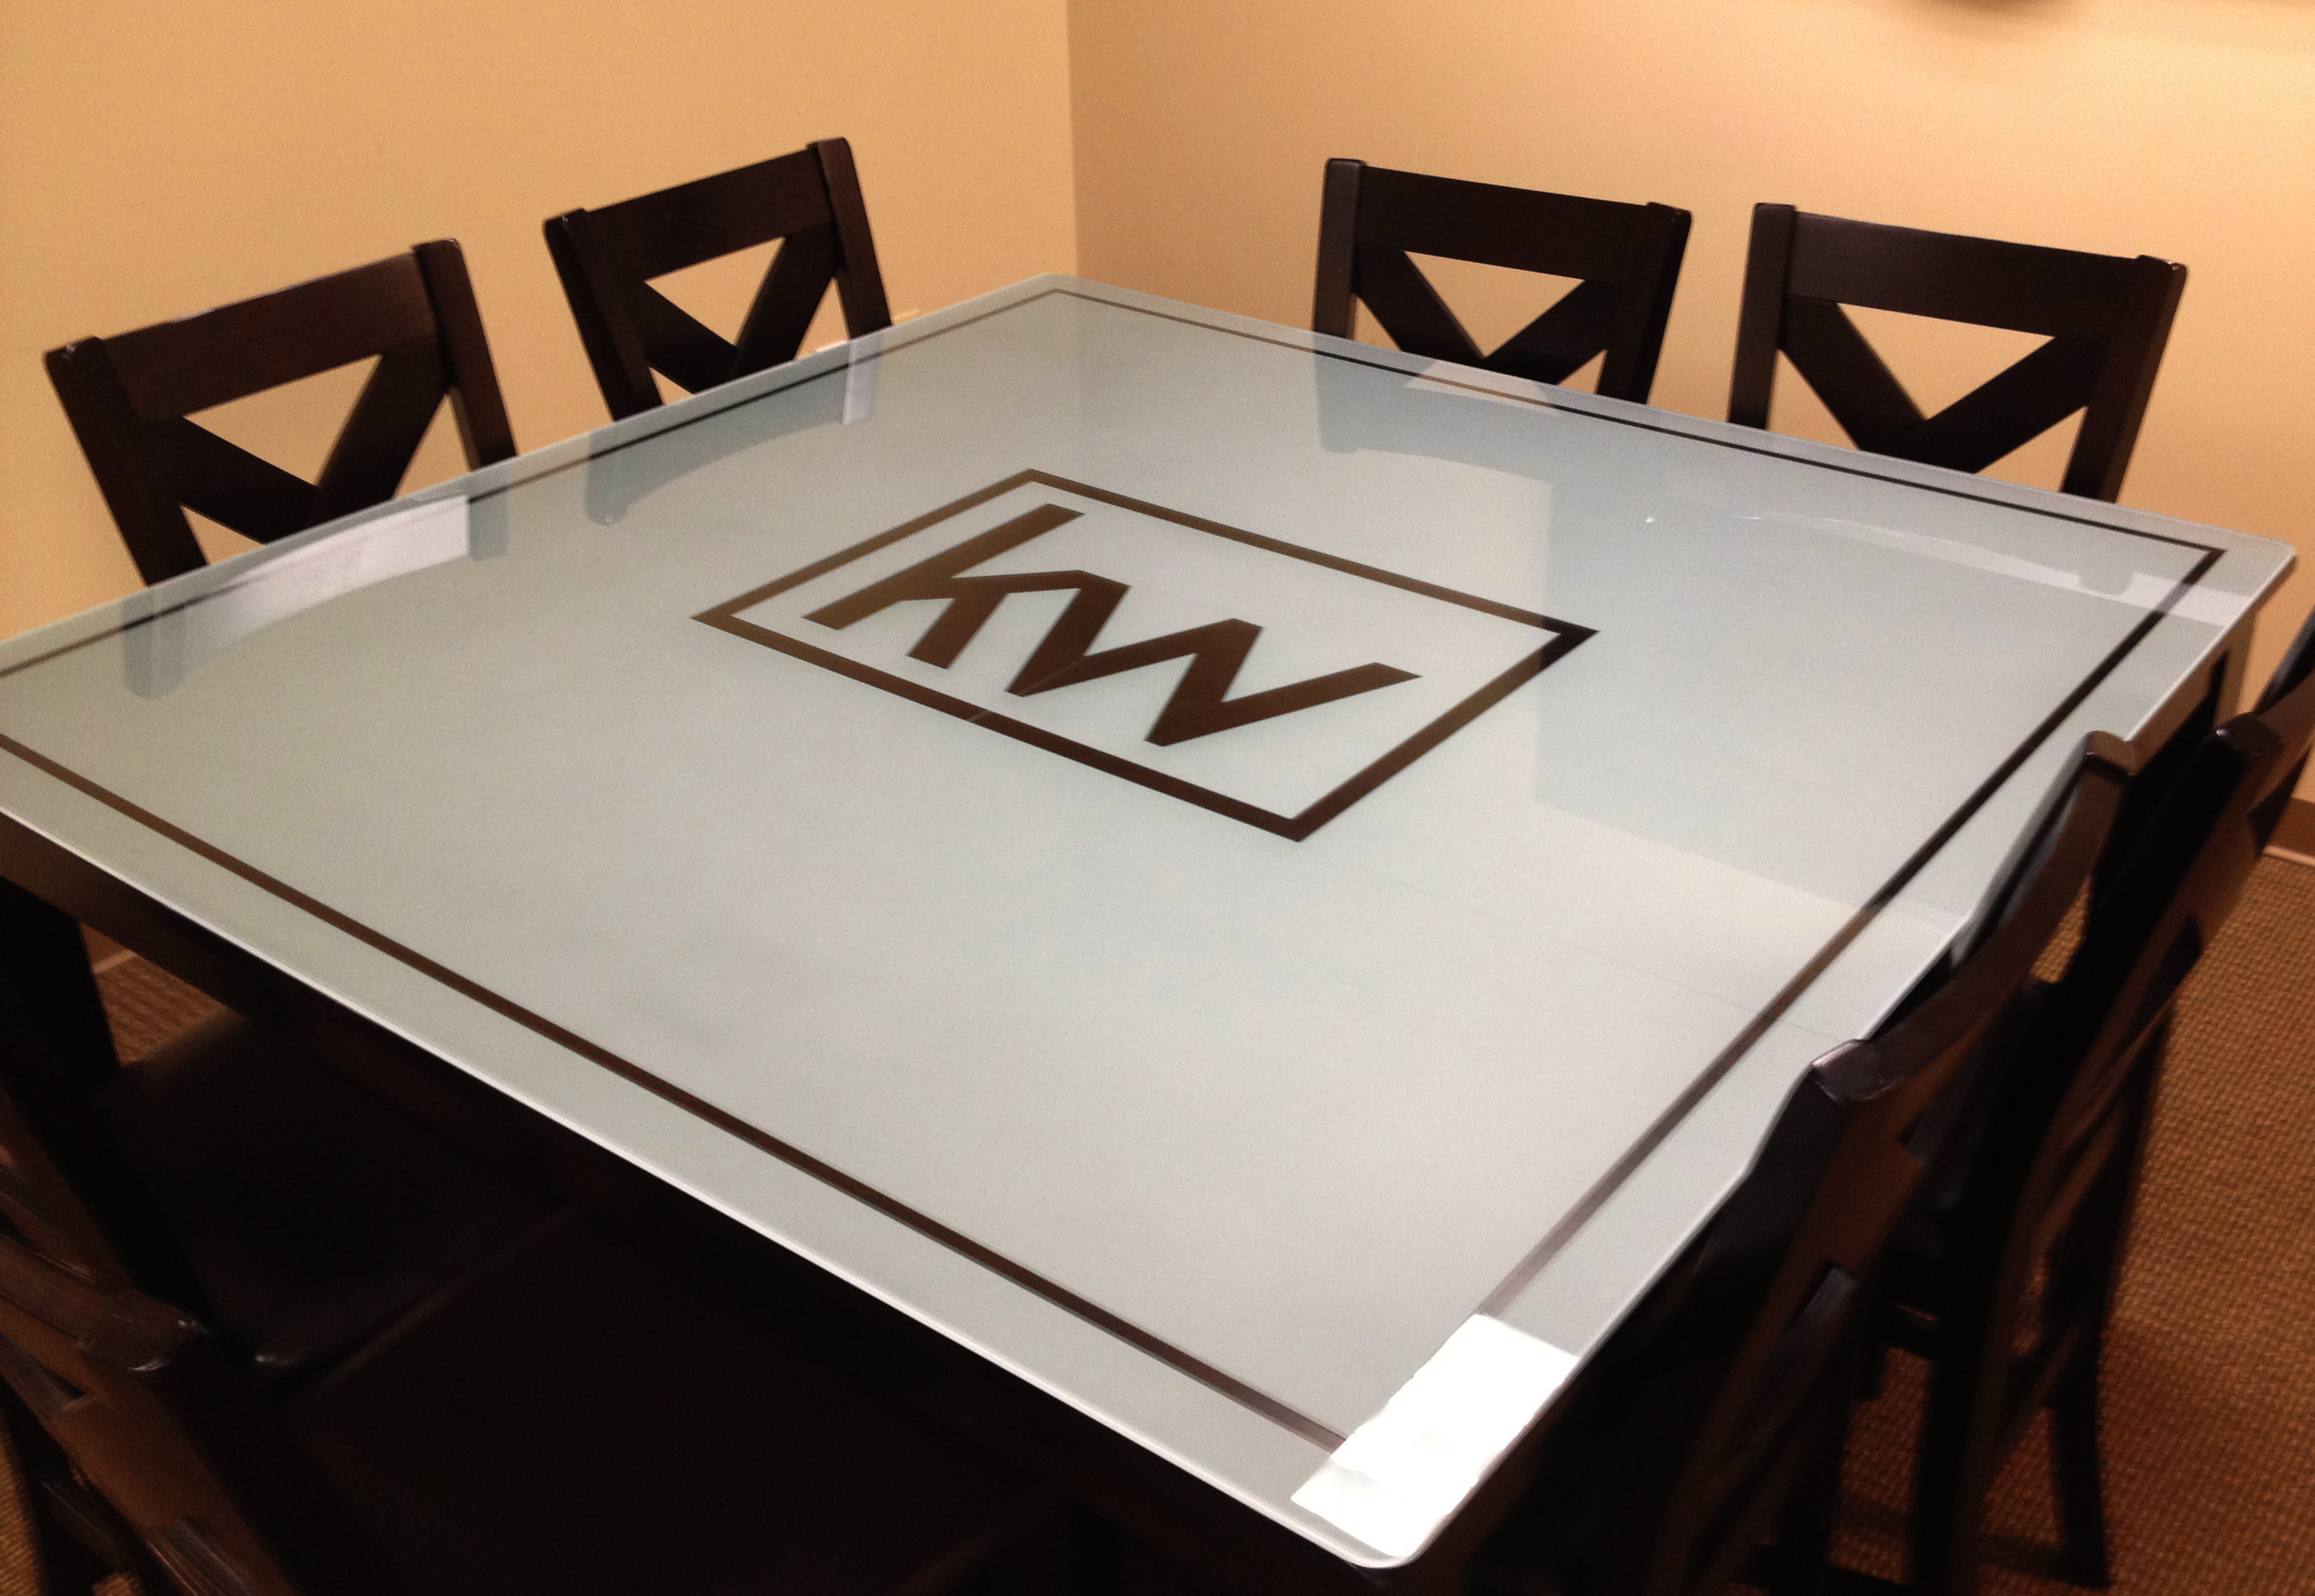 Sandblasted or frosted glass conference room table top by Glass Graphics of Atlanta.